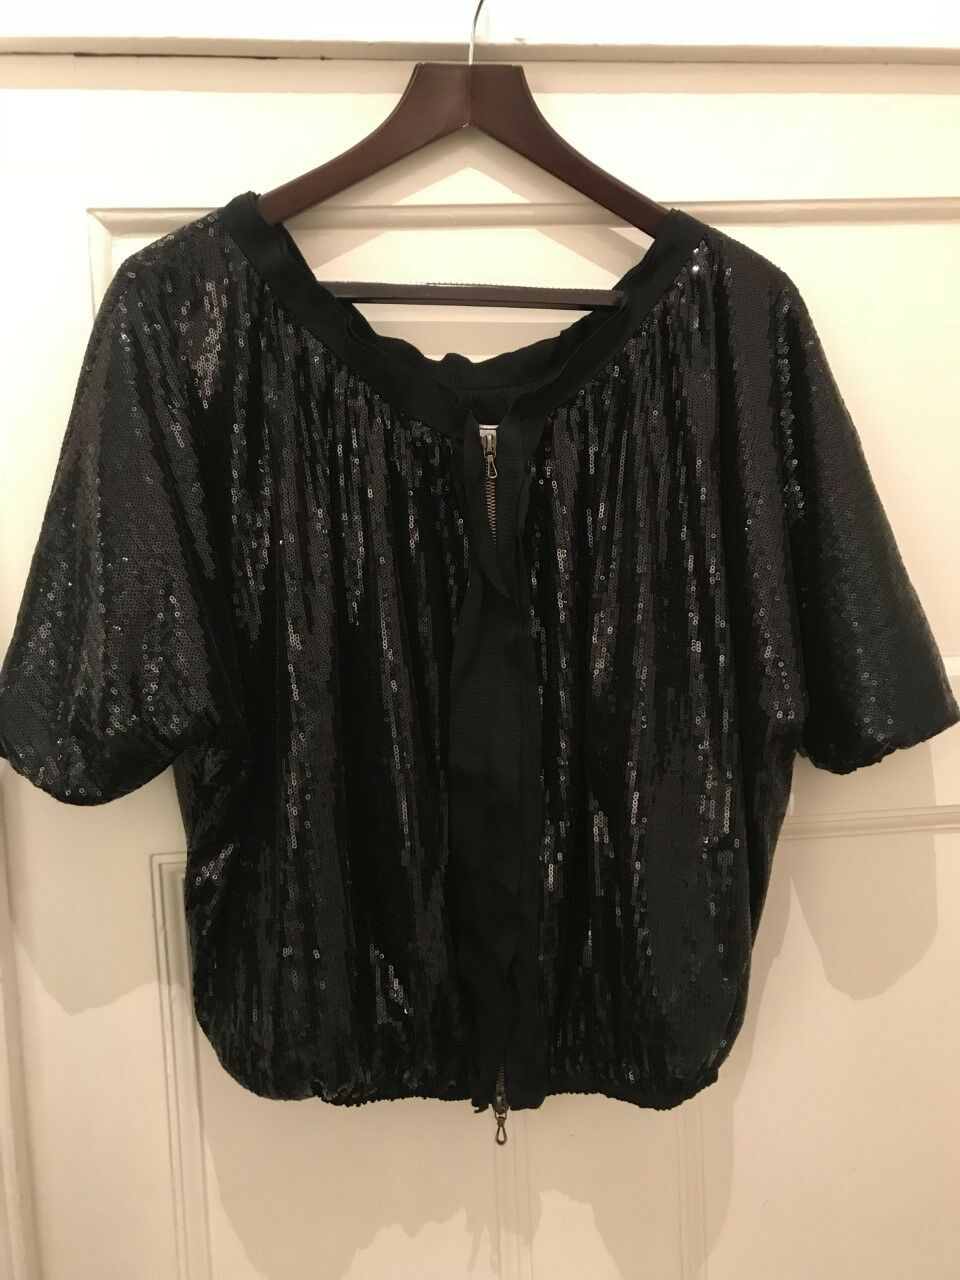 NEARLY NEW - Genuine LANVIN Sequin Zip Front Top - schwarz - Größe 40